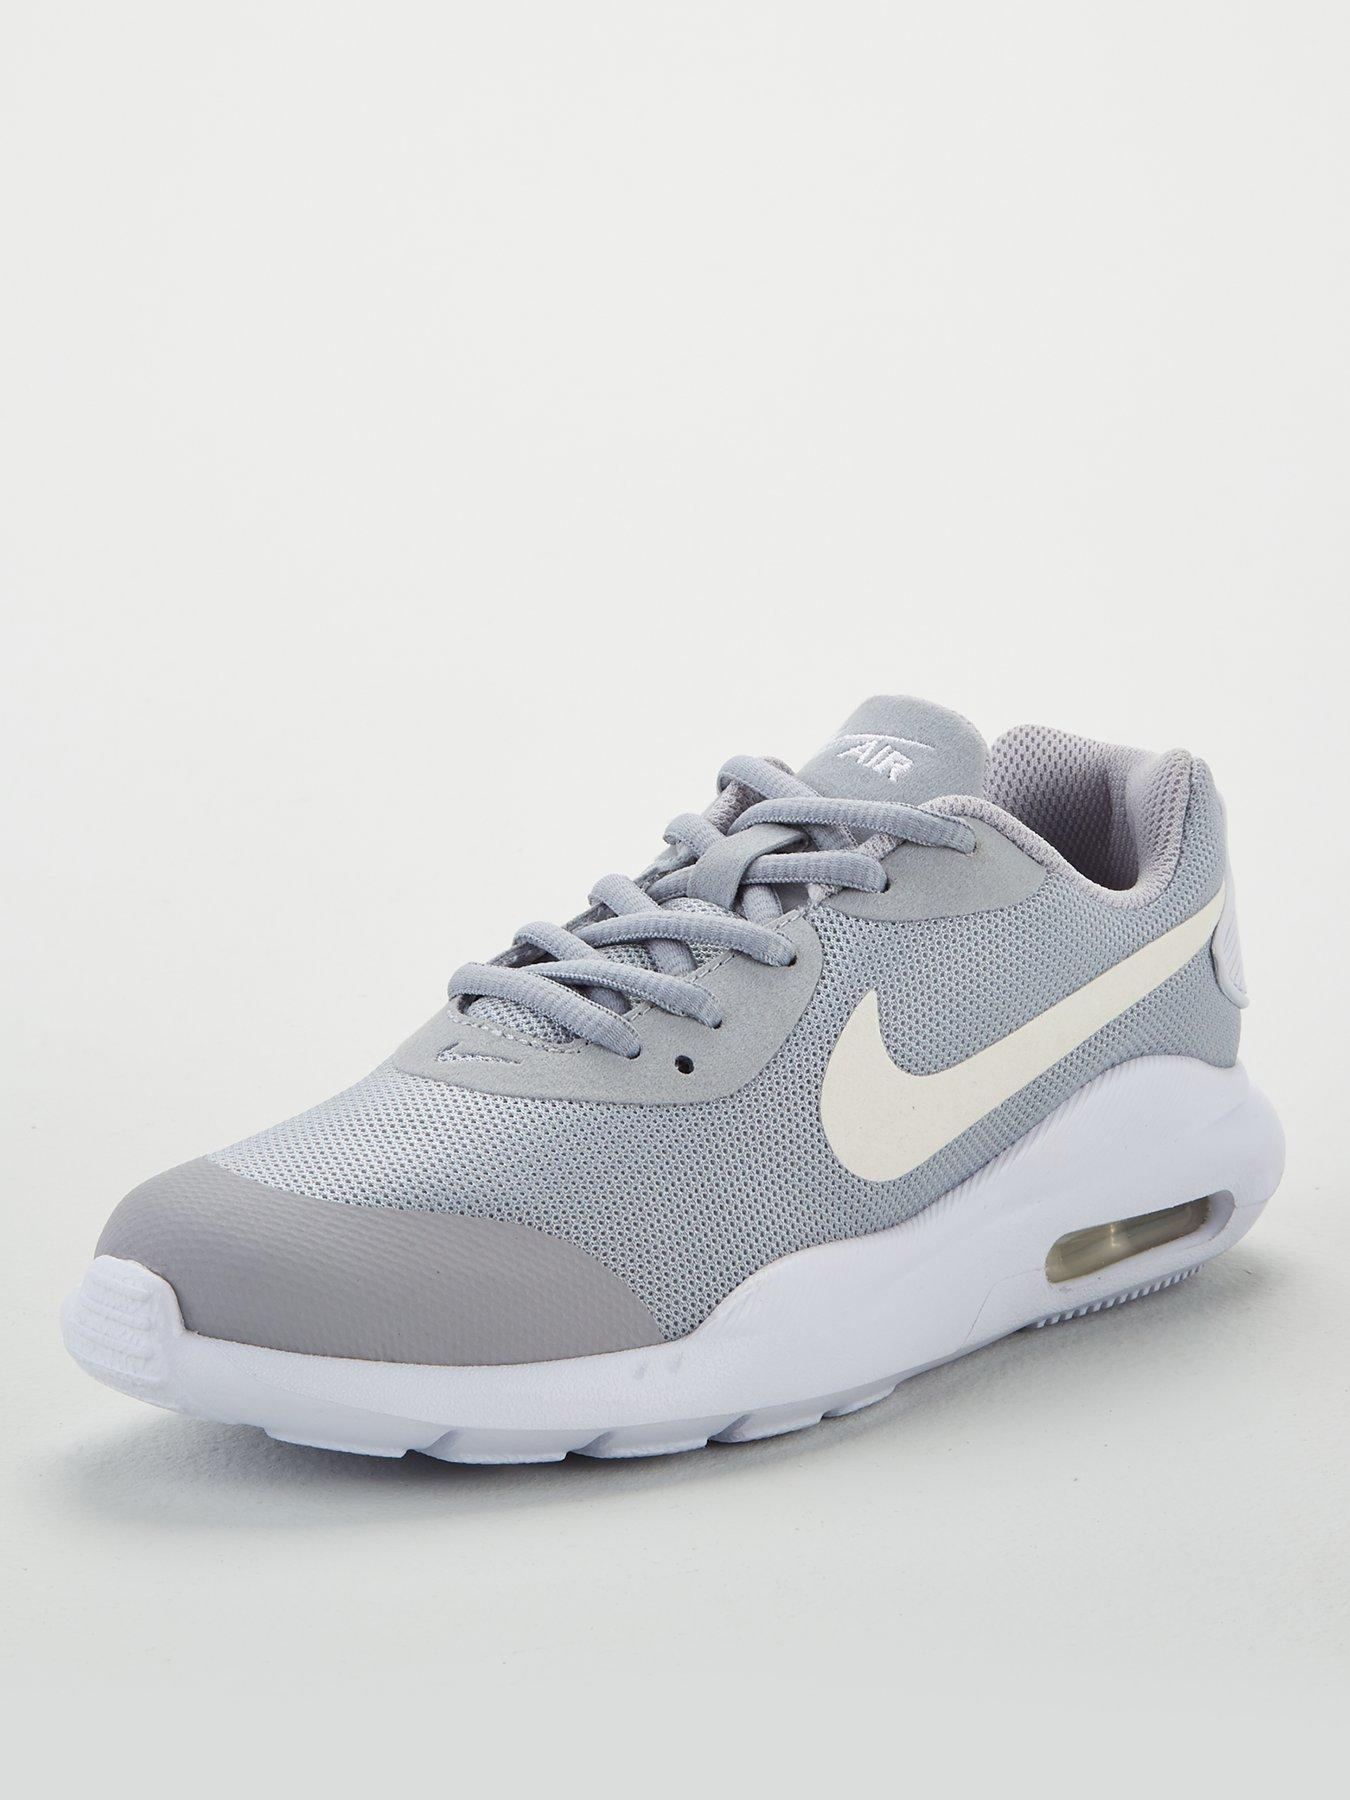 Nike Air Max 90 NavyGrey White Spring 2010 Air 23 Air